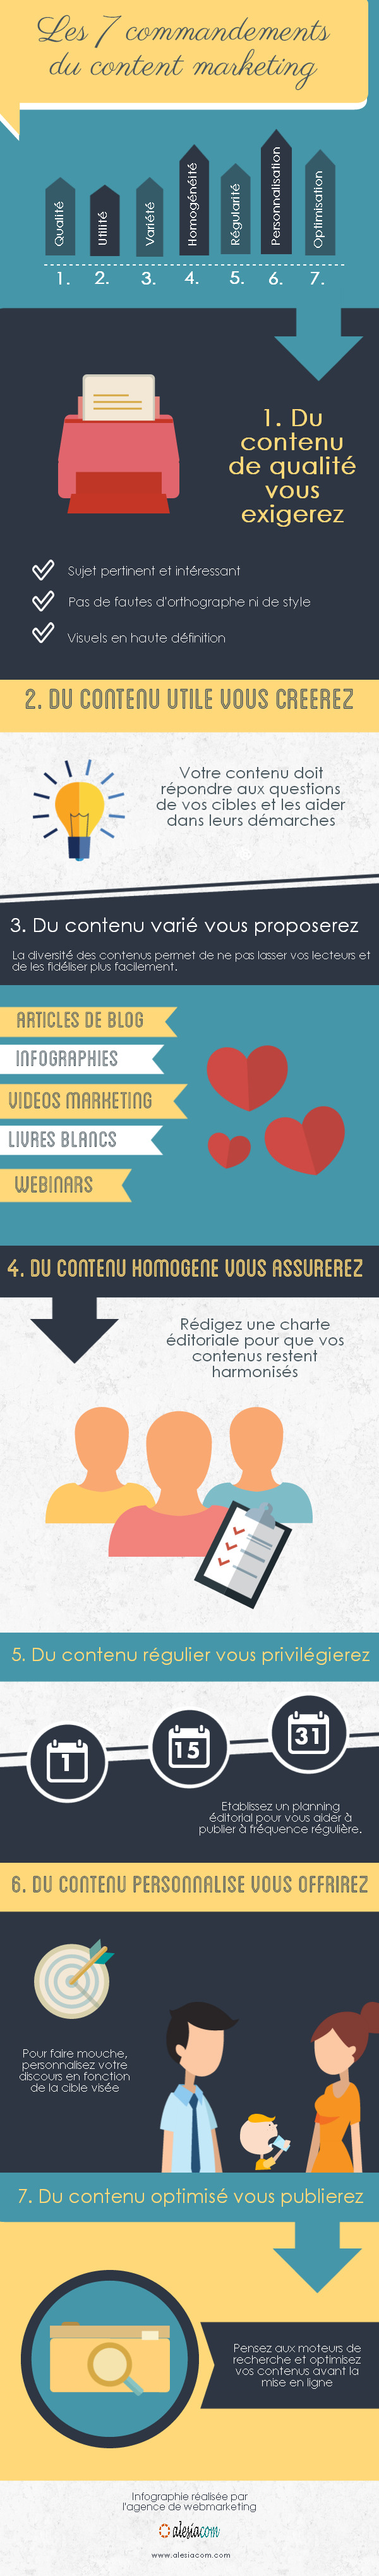 Les 7 commandements du content marketing